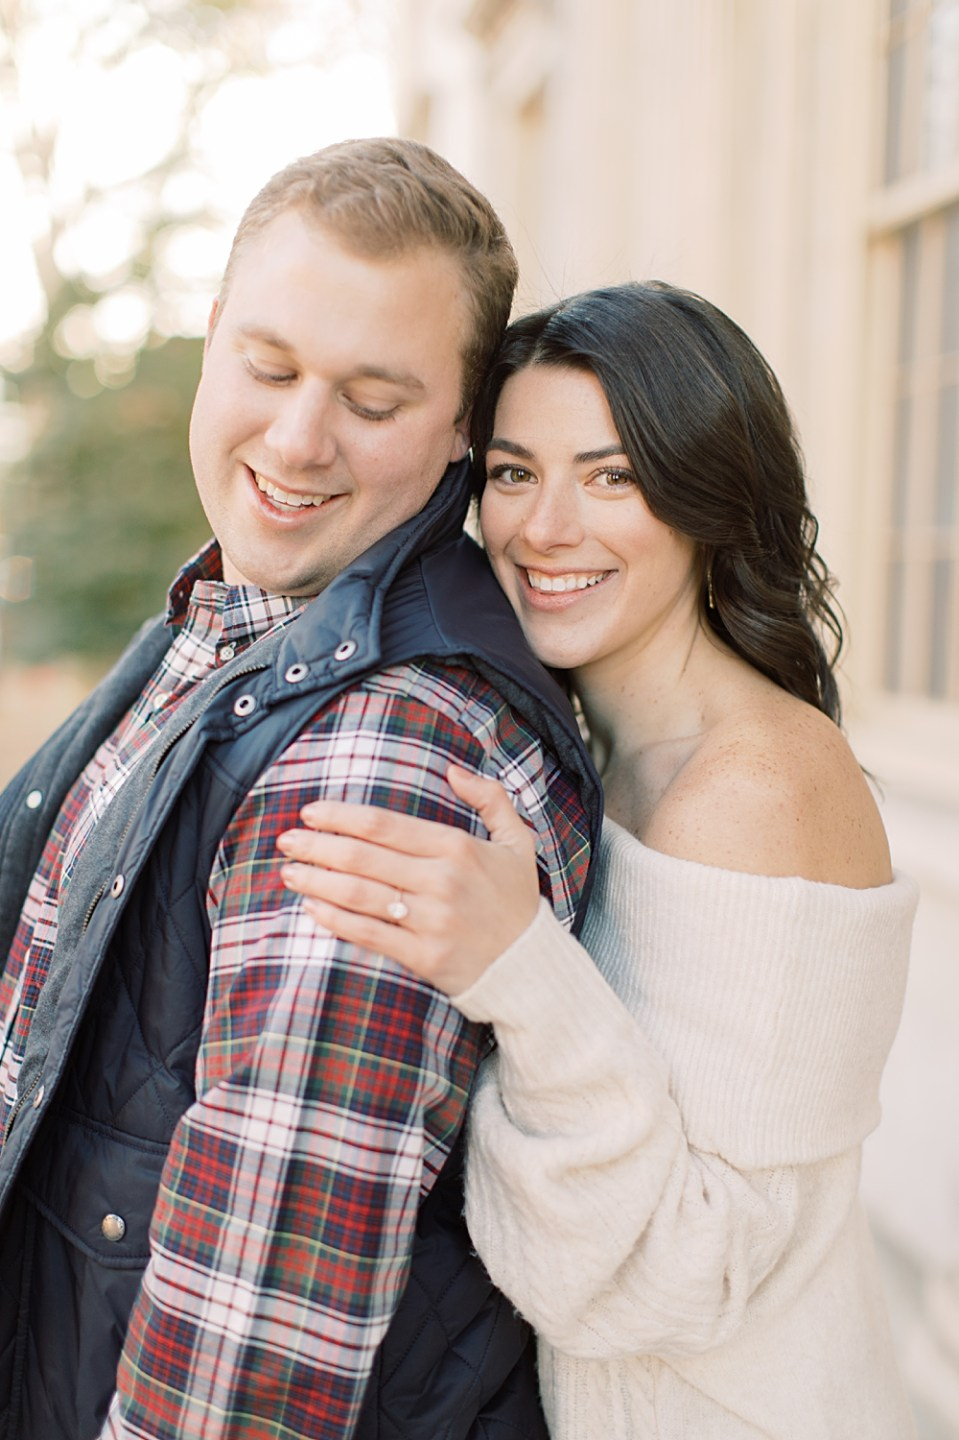 glowing engaged couple | Philadelphia Engagement Session